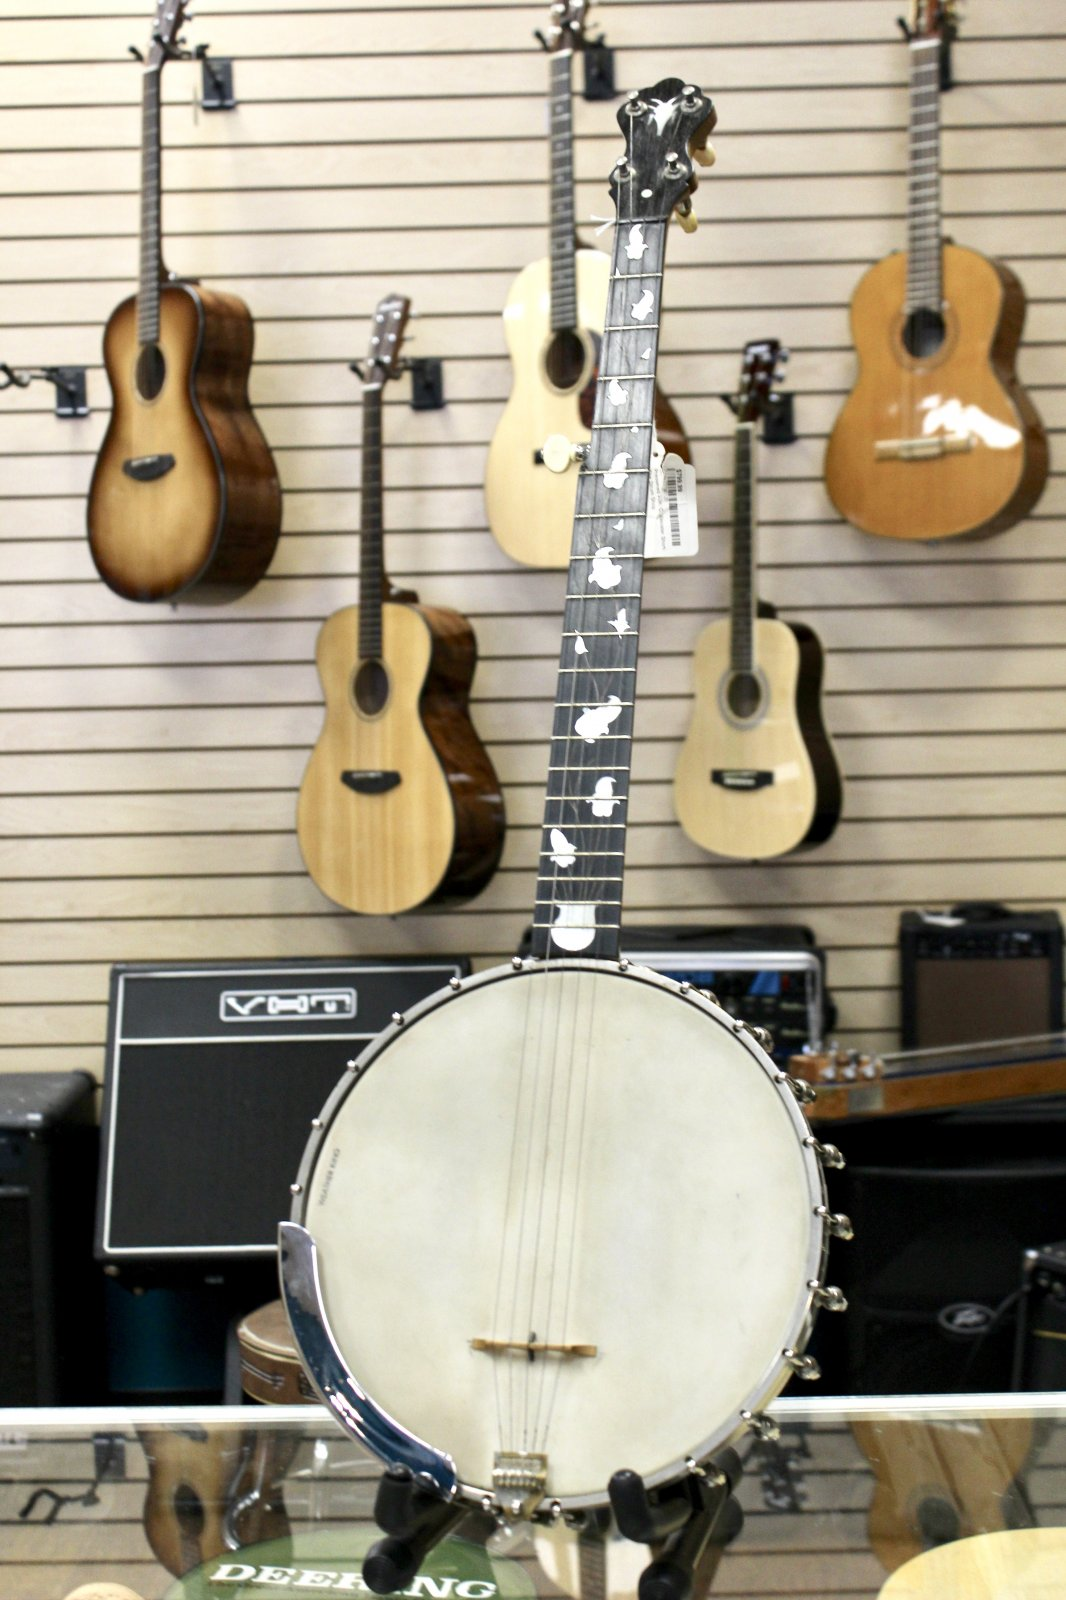 Preowned Wm. C. Webster Short-Scale Banjo